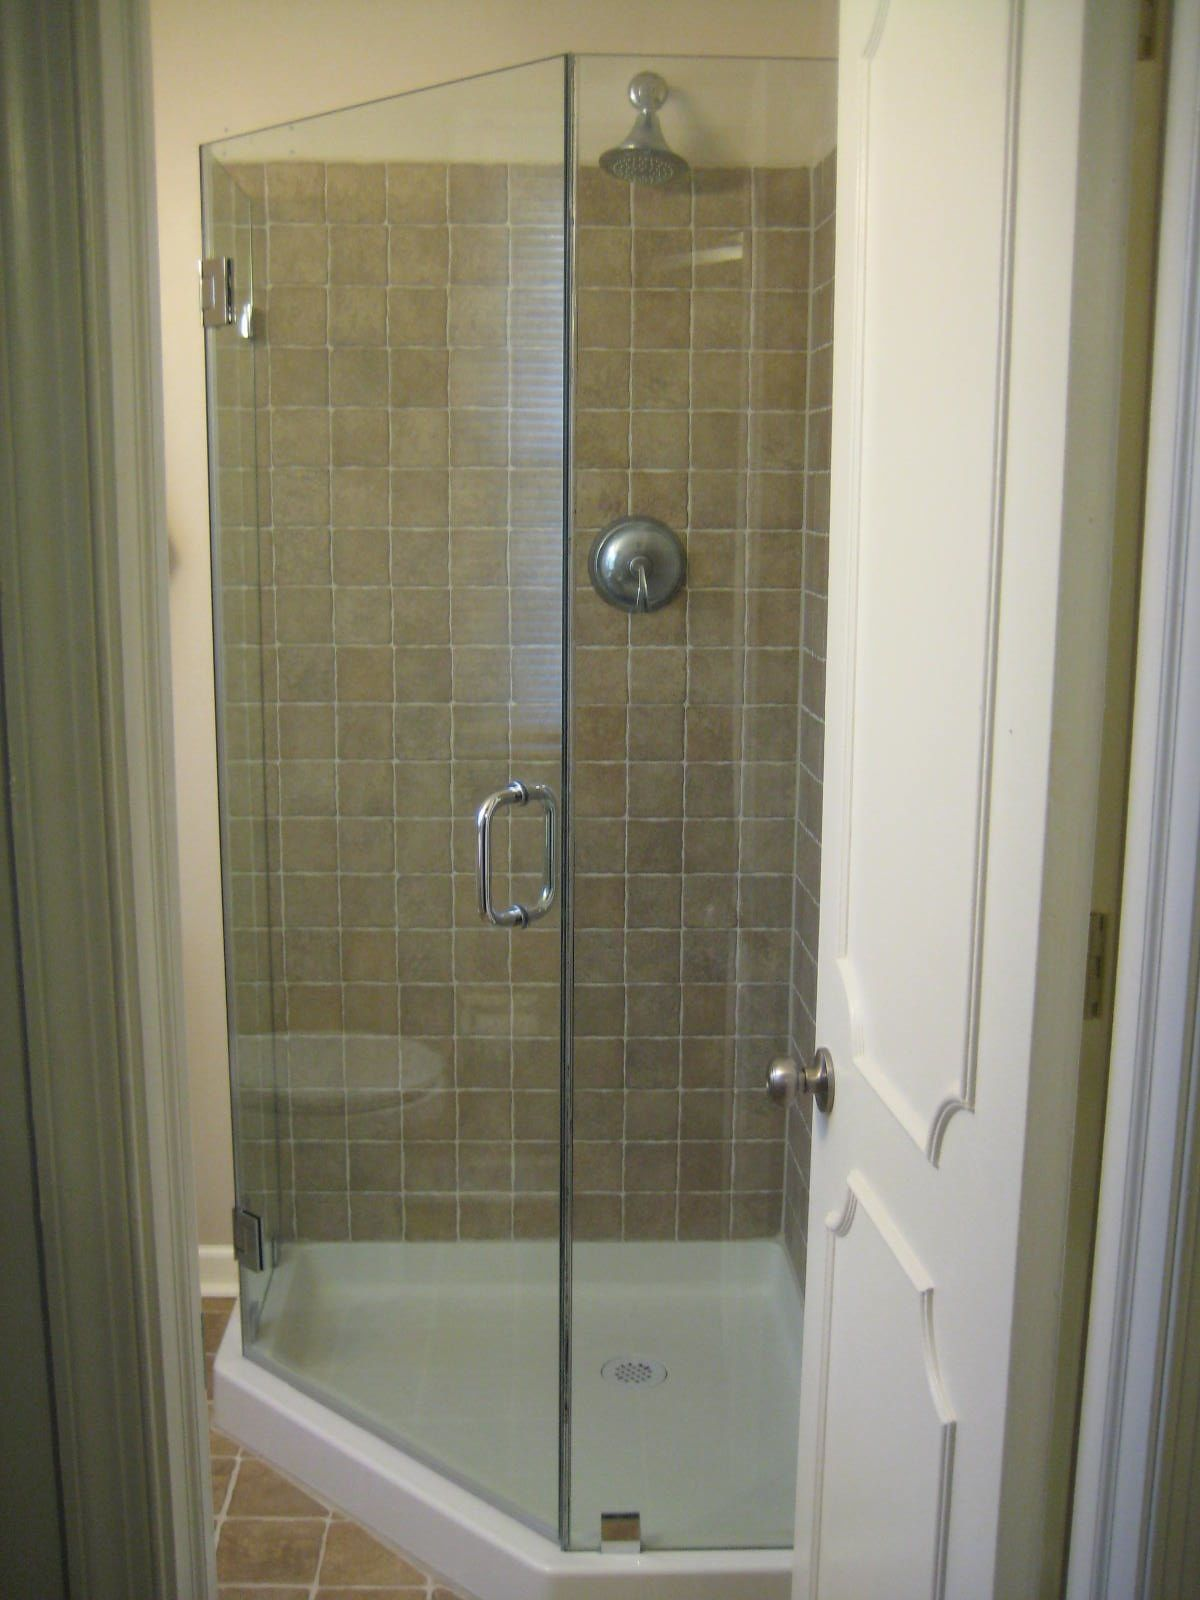 Frameless Neo Angle Shower Enclosure Shown With A 36x36 Pre Fab Base And Tile Walls Neo Angle Shower Enclosures Small Bathroom Redo Bathroom Remodel Master